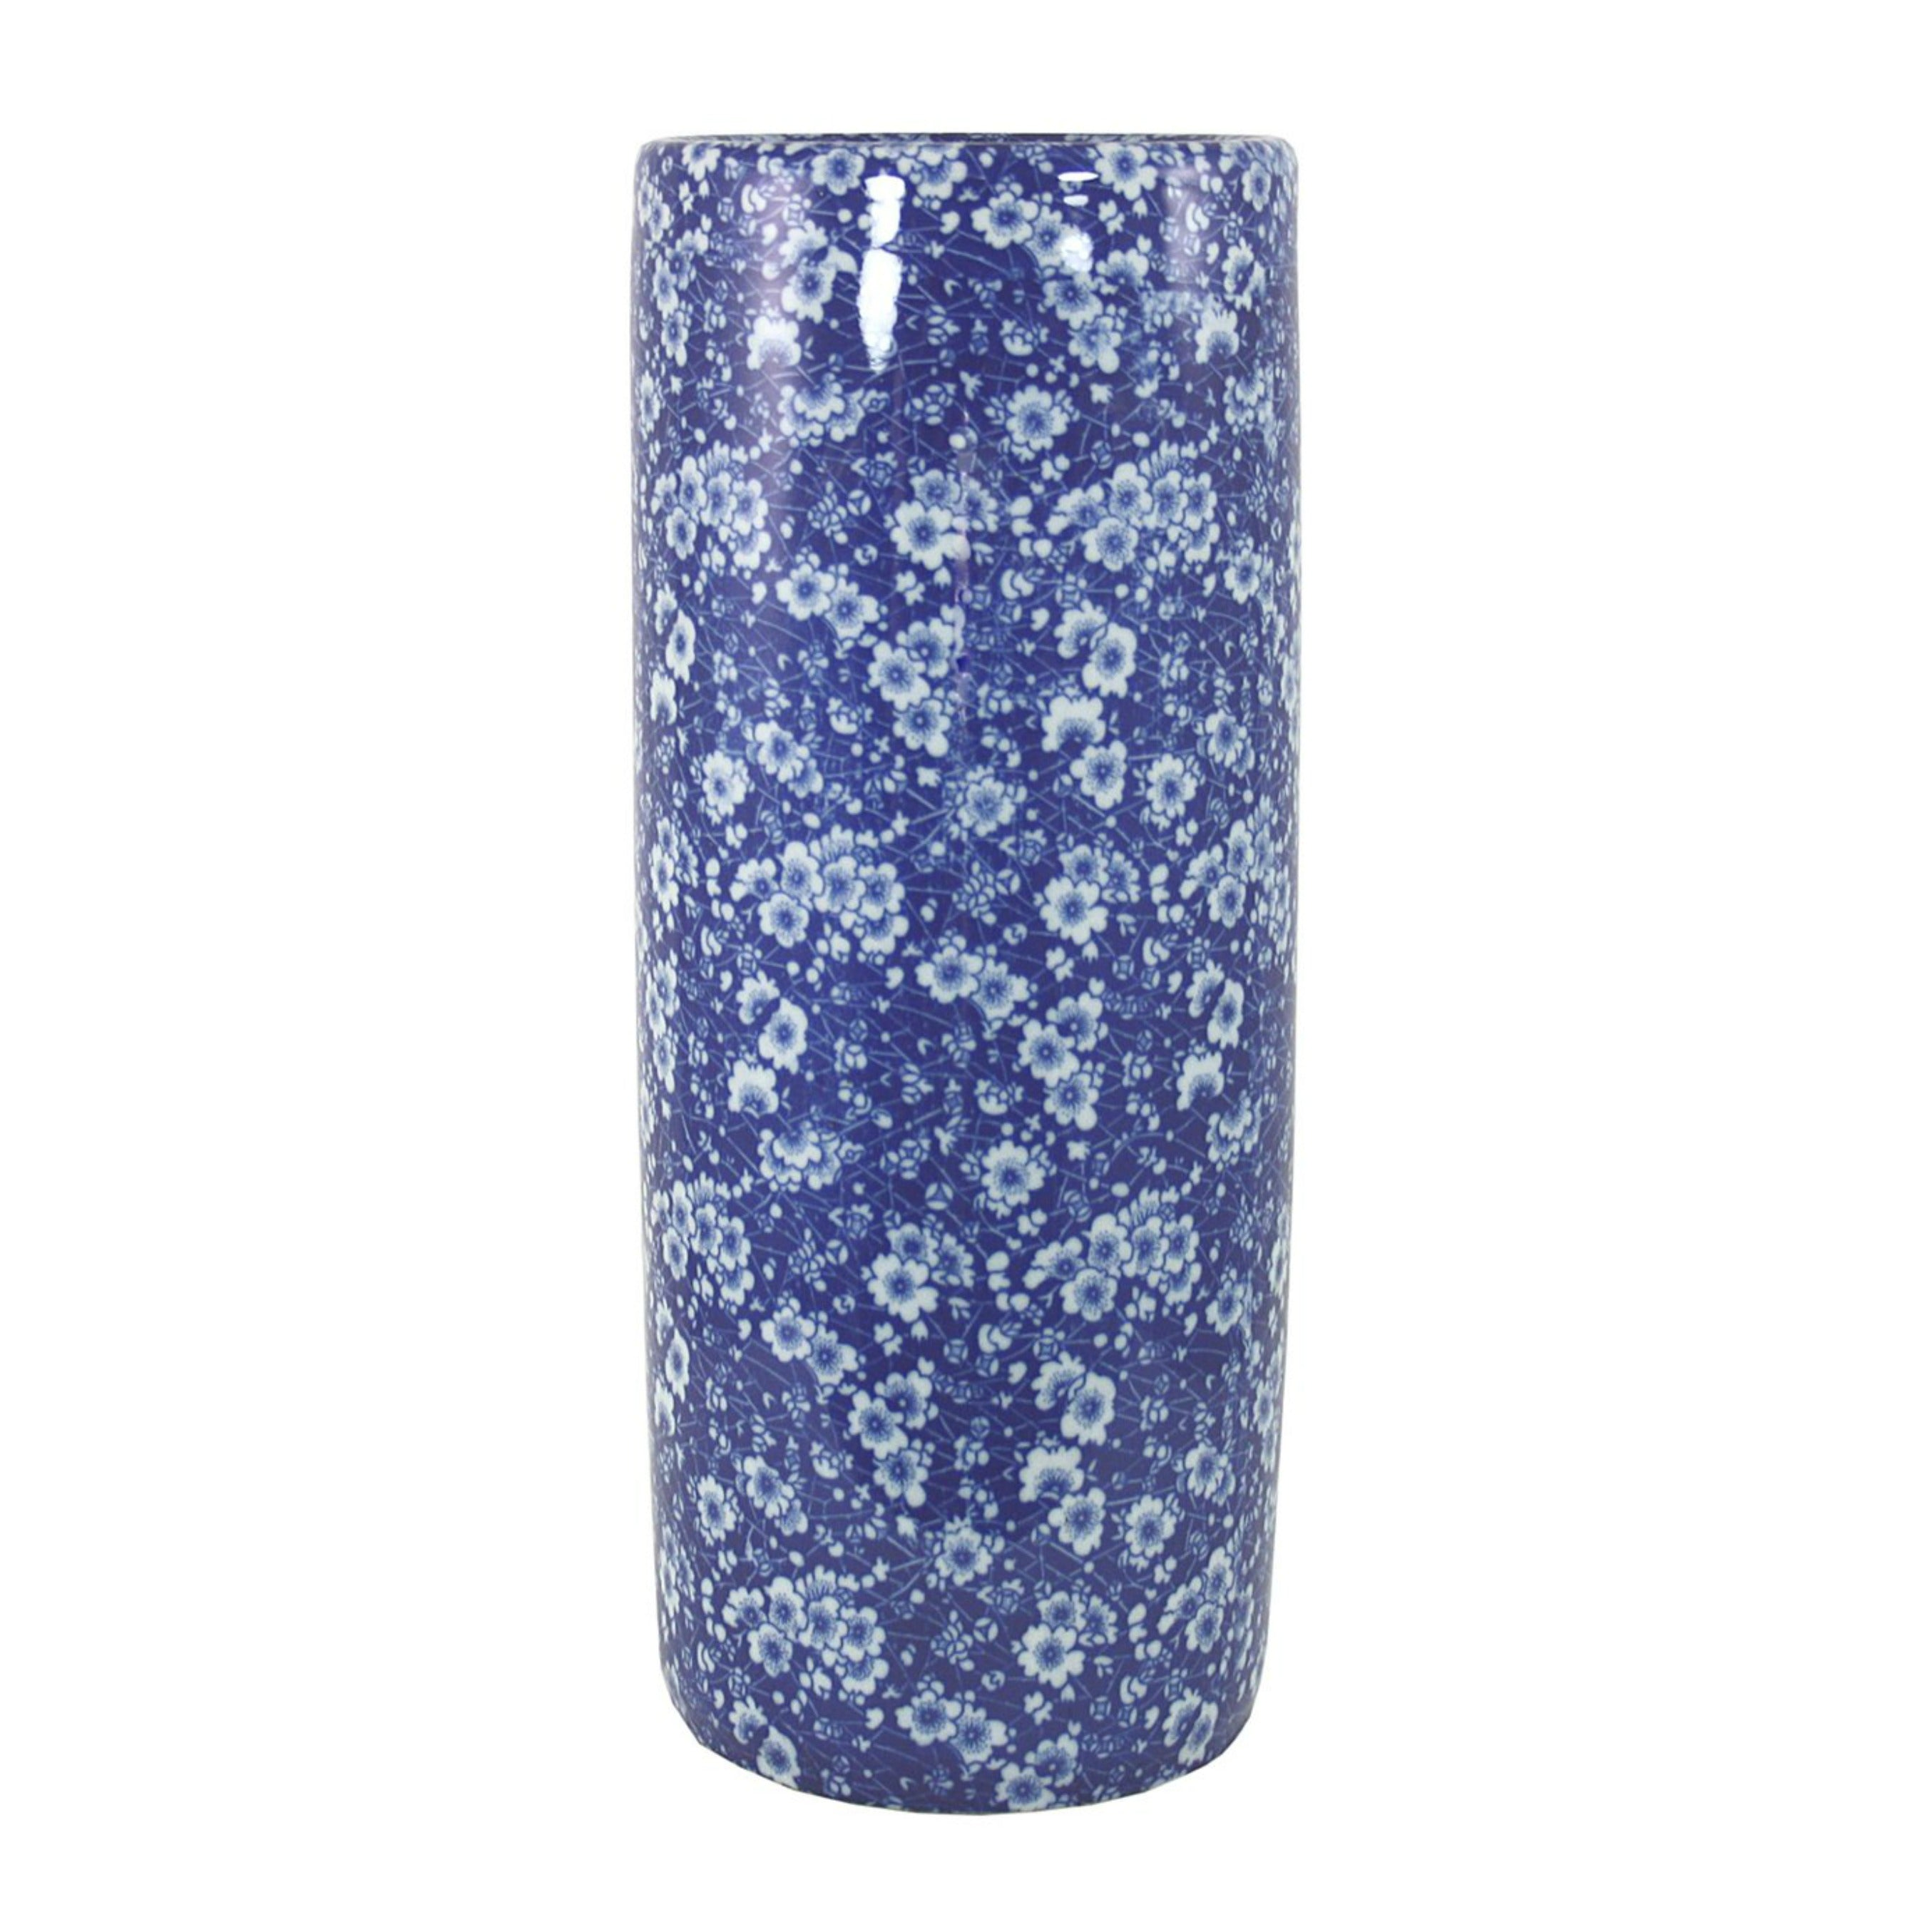 Umbrella Stand, Vintage Blue & White Daisies Design, Parasols & Rain Umbrellas by Low Cost Gifts